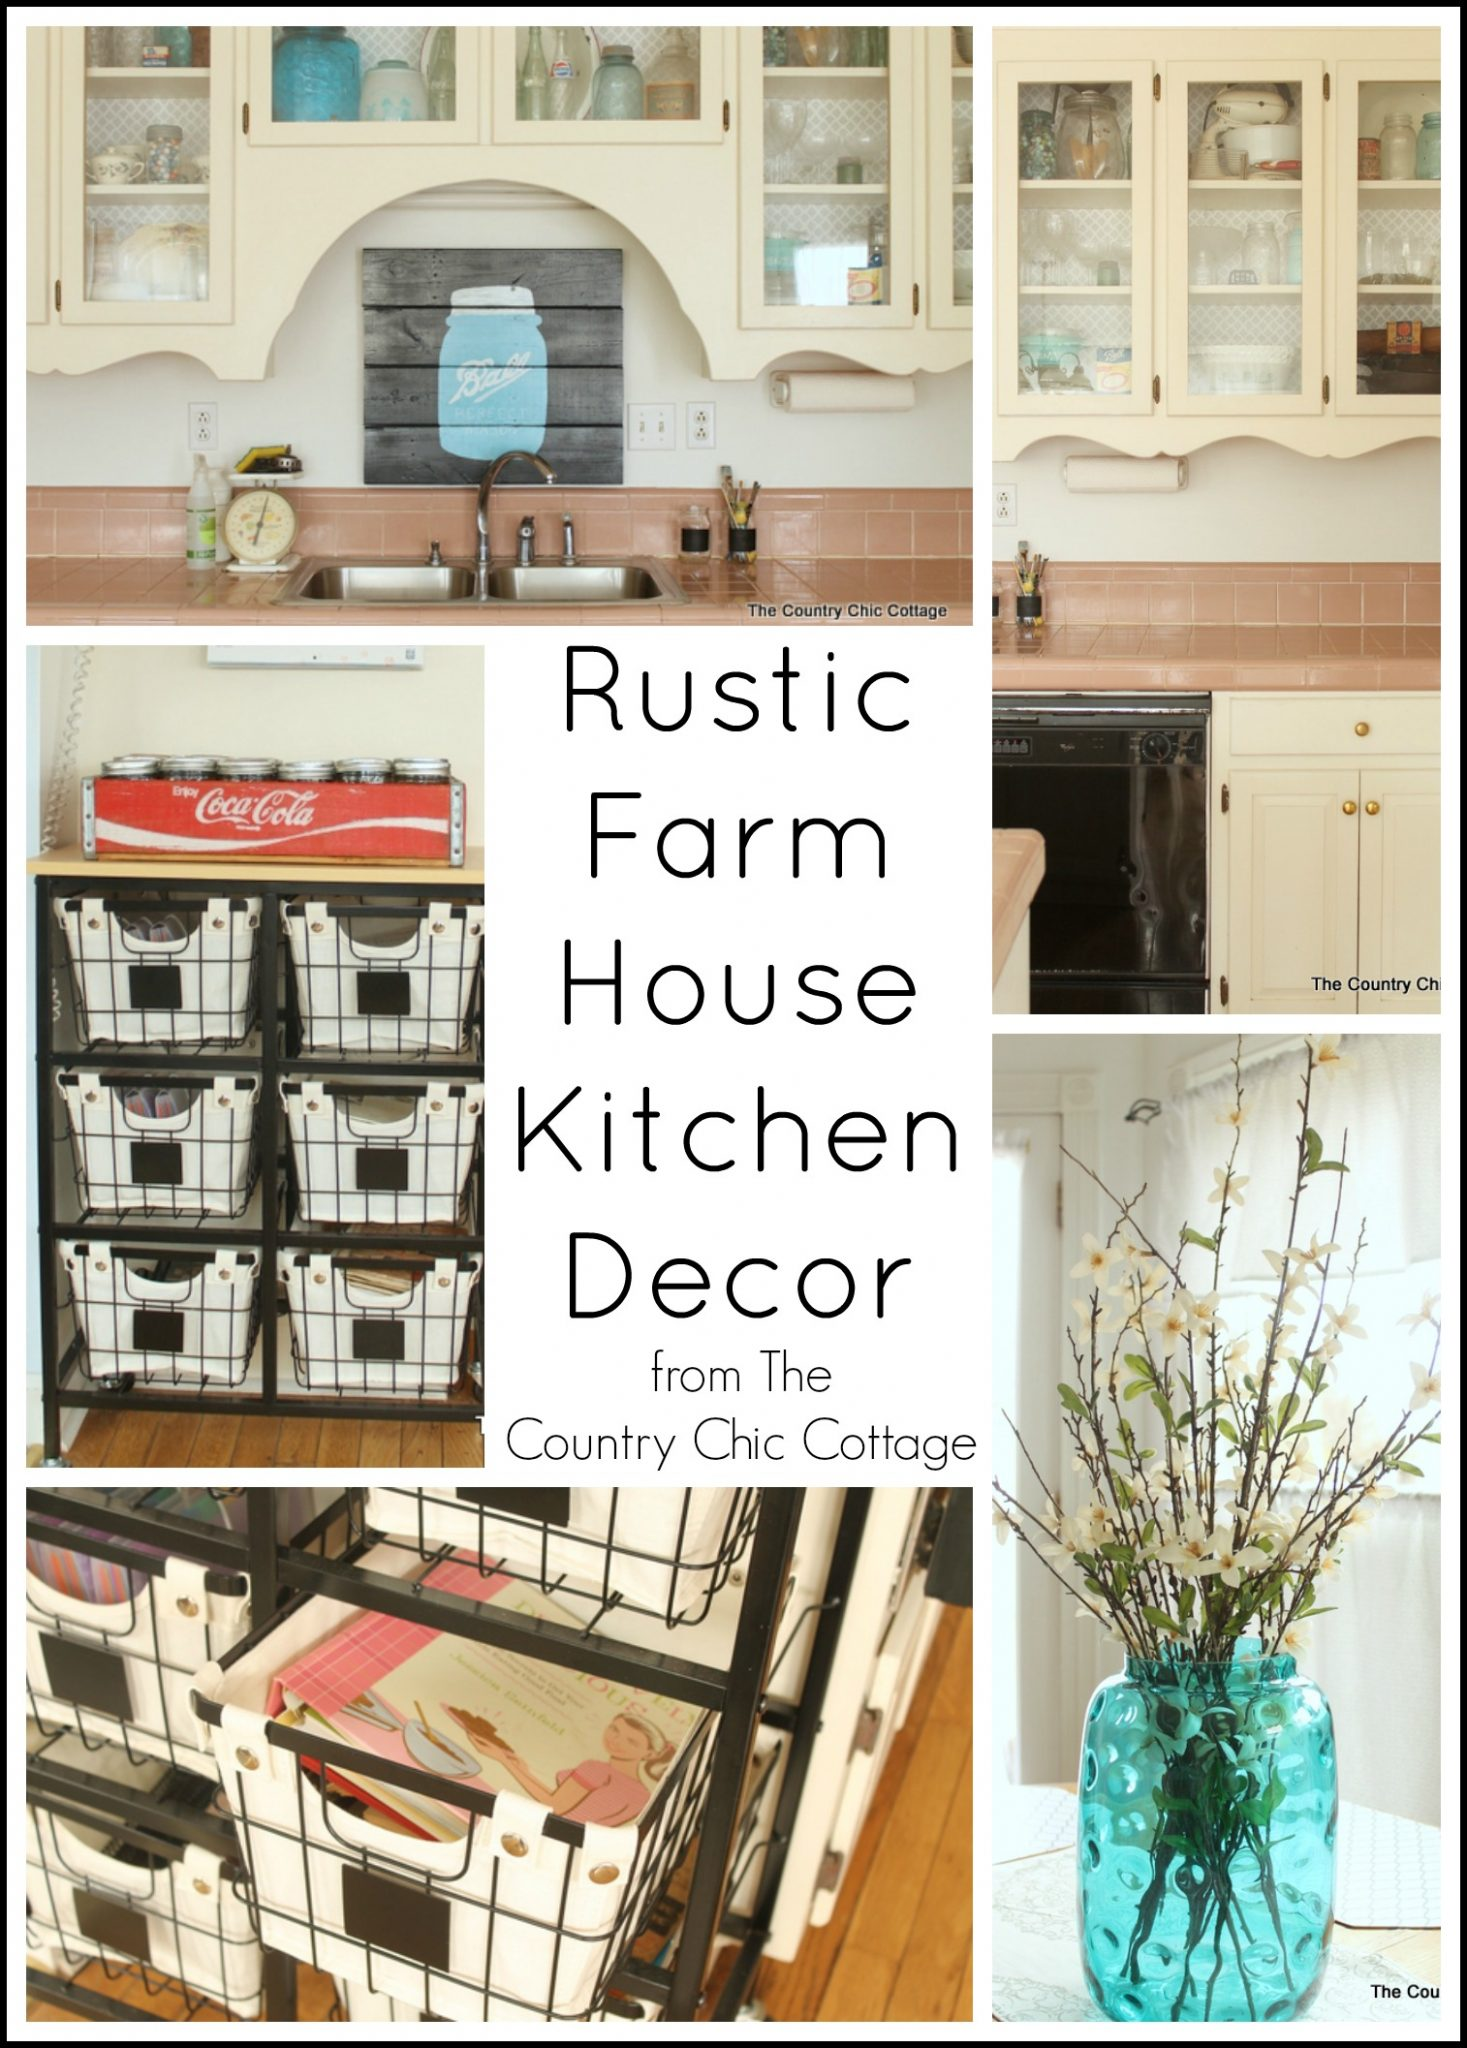 Rustic Farmhouse Kitchen Decor - The Country Chic Cottage on Rustic Farmhouse Kitchen  id=77541